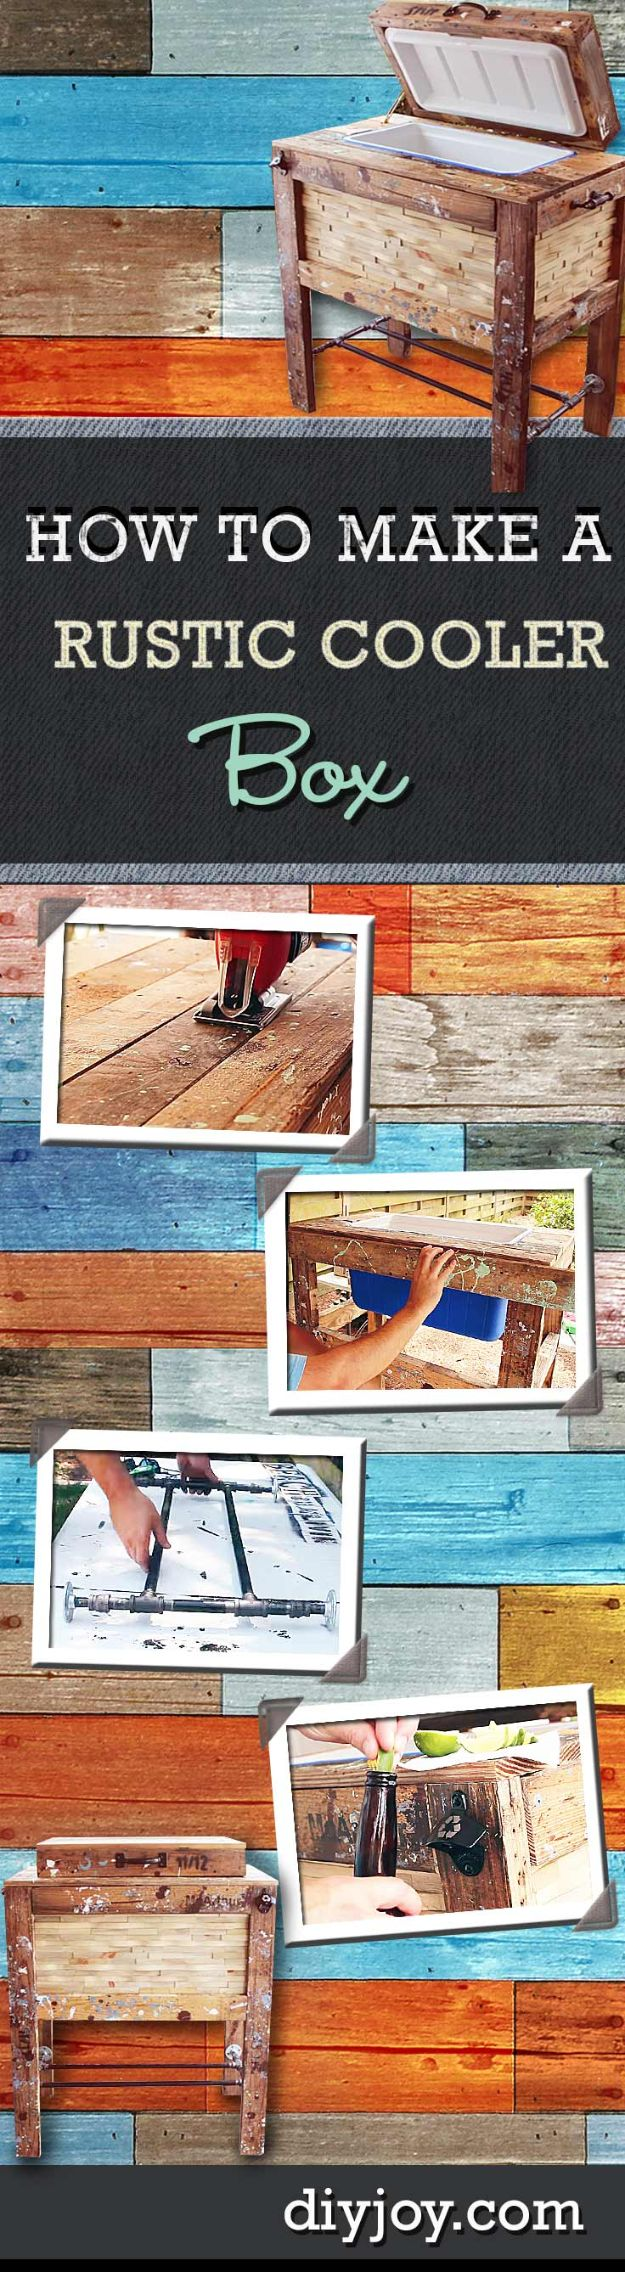 DIY Outdoor Furniture - Rustic Cooler Box - Cheap and Easy Ideas for Patio and Porch Seating and Tables, Chairs, Sofas - How To Make Outdoor Furniture Projects on A Budget - Fmaily Friendly Decor Kids Love - Quick Projects to Make This Weekend - Swings, Pallet Tables, End Tables, Rocking Chairs, Daybeds and Benches